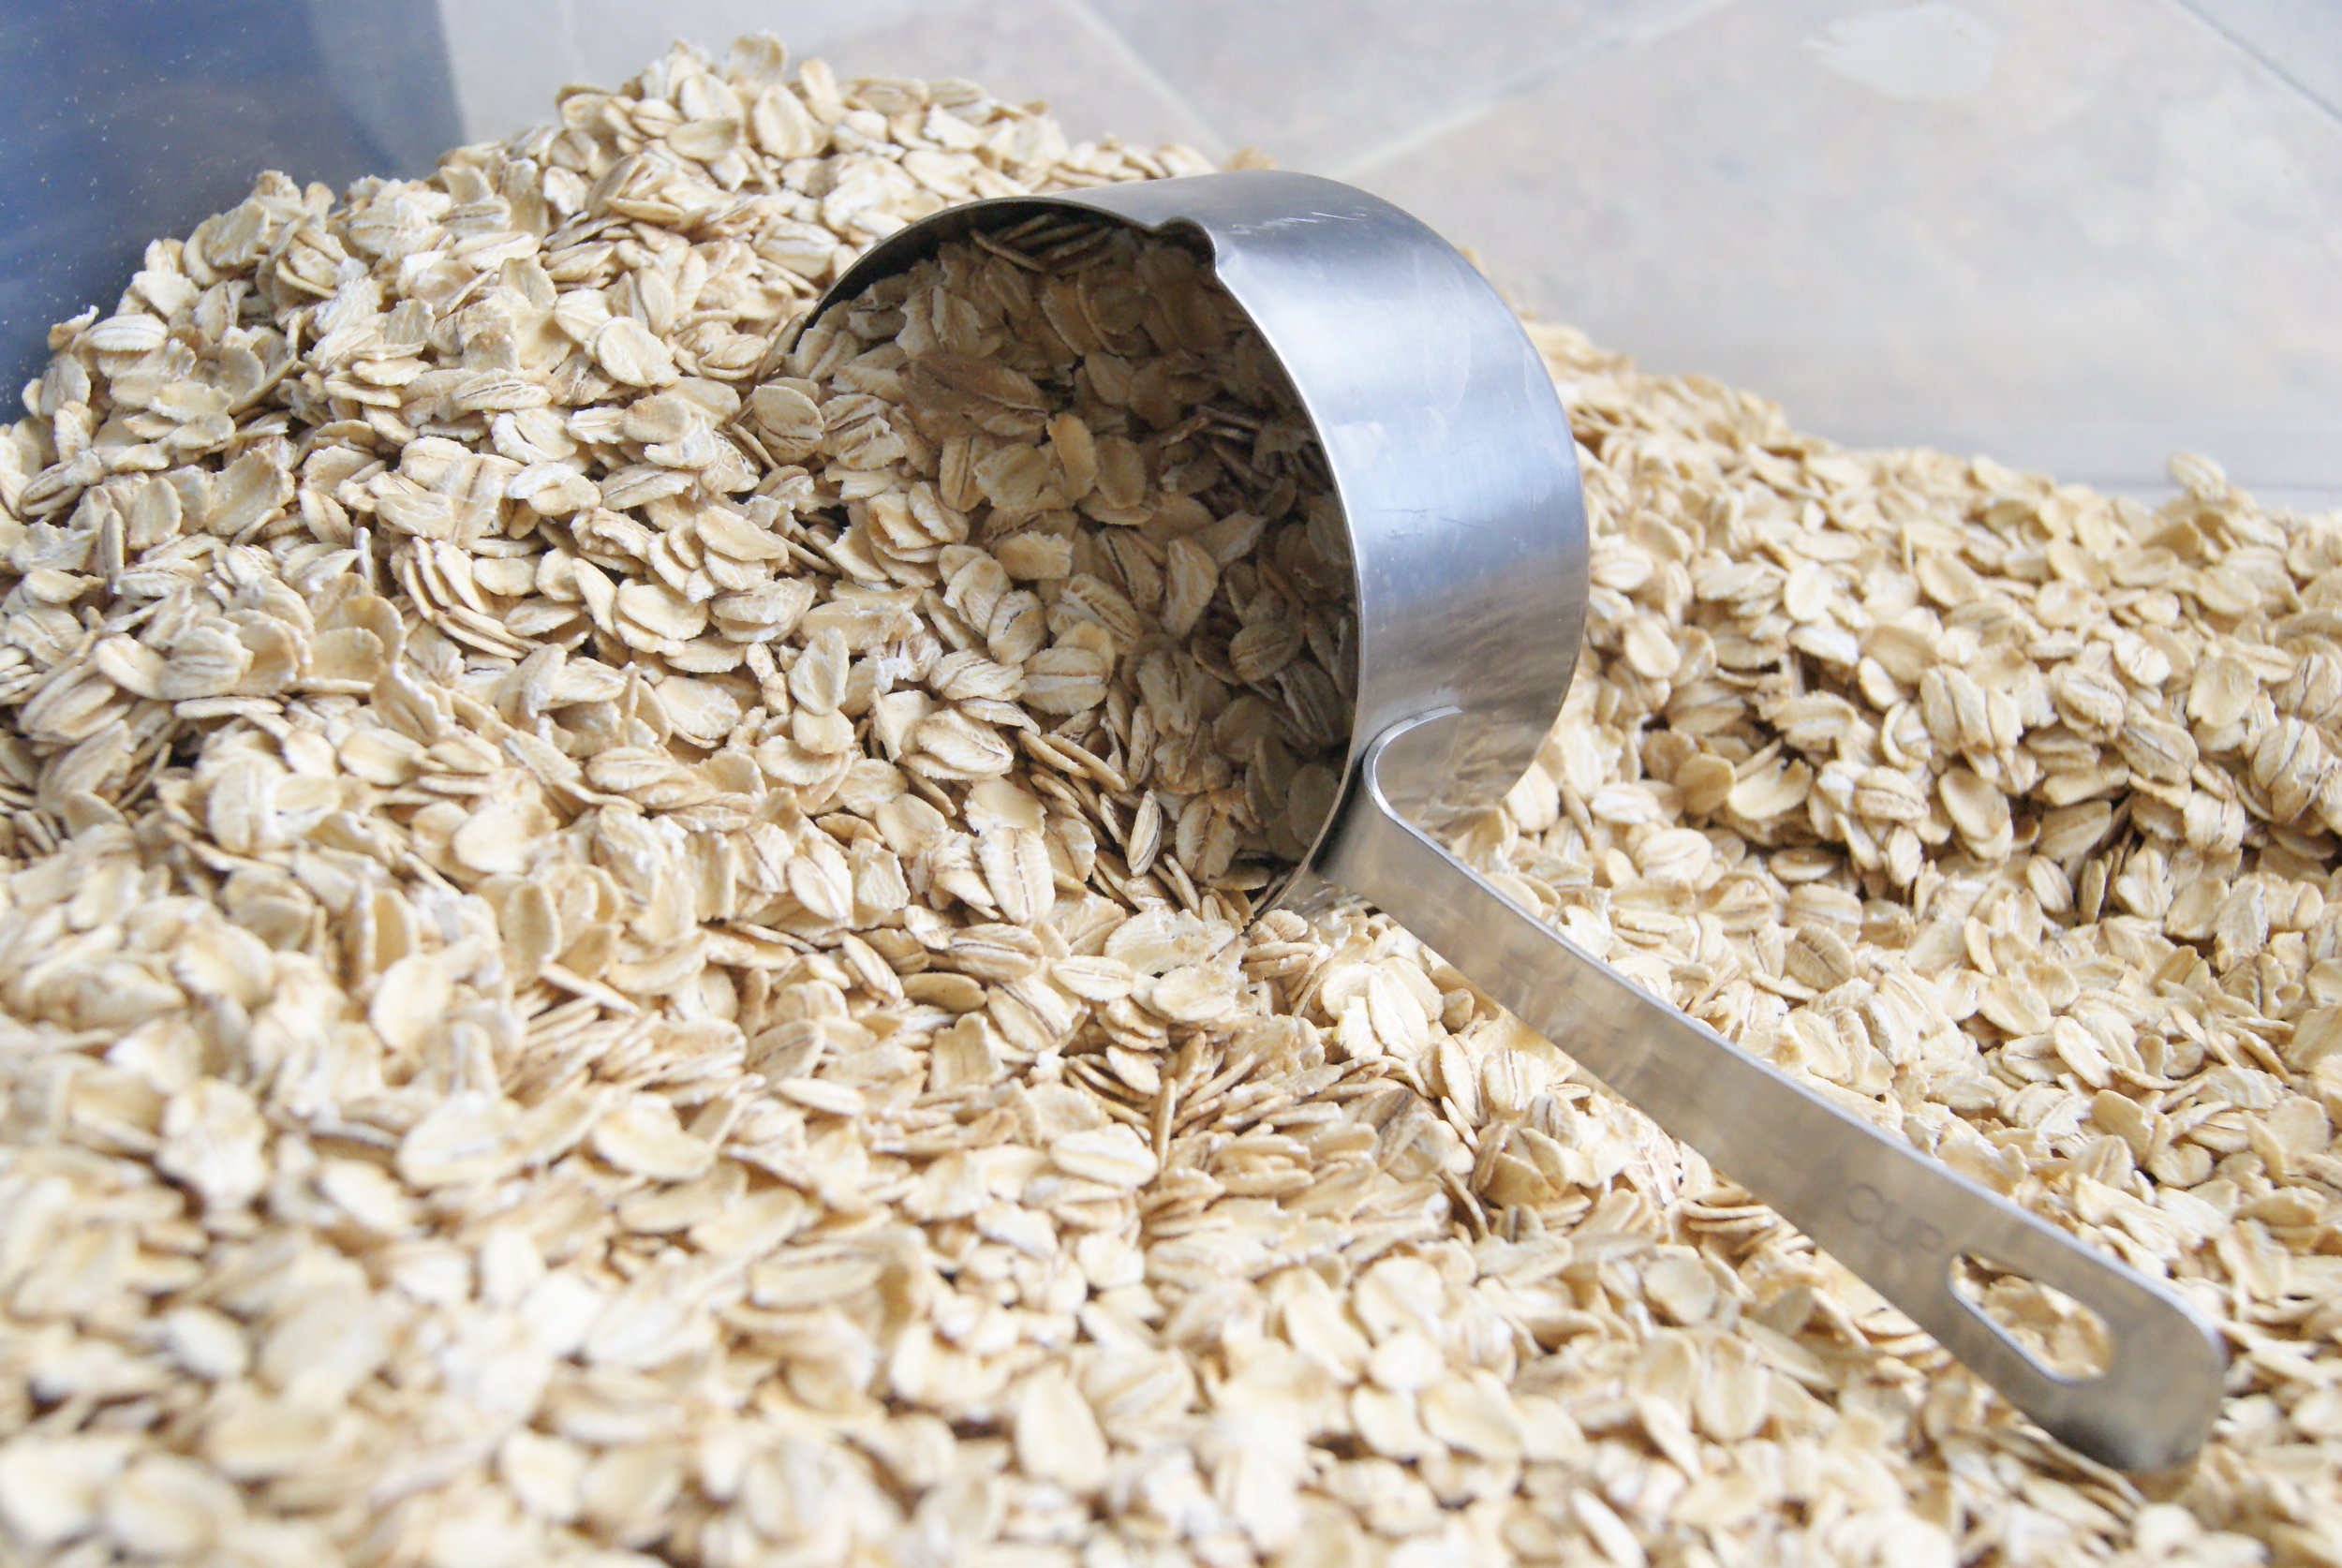 We have a big ol' container of rolled oats, so nice to have on-hand for baking!